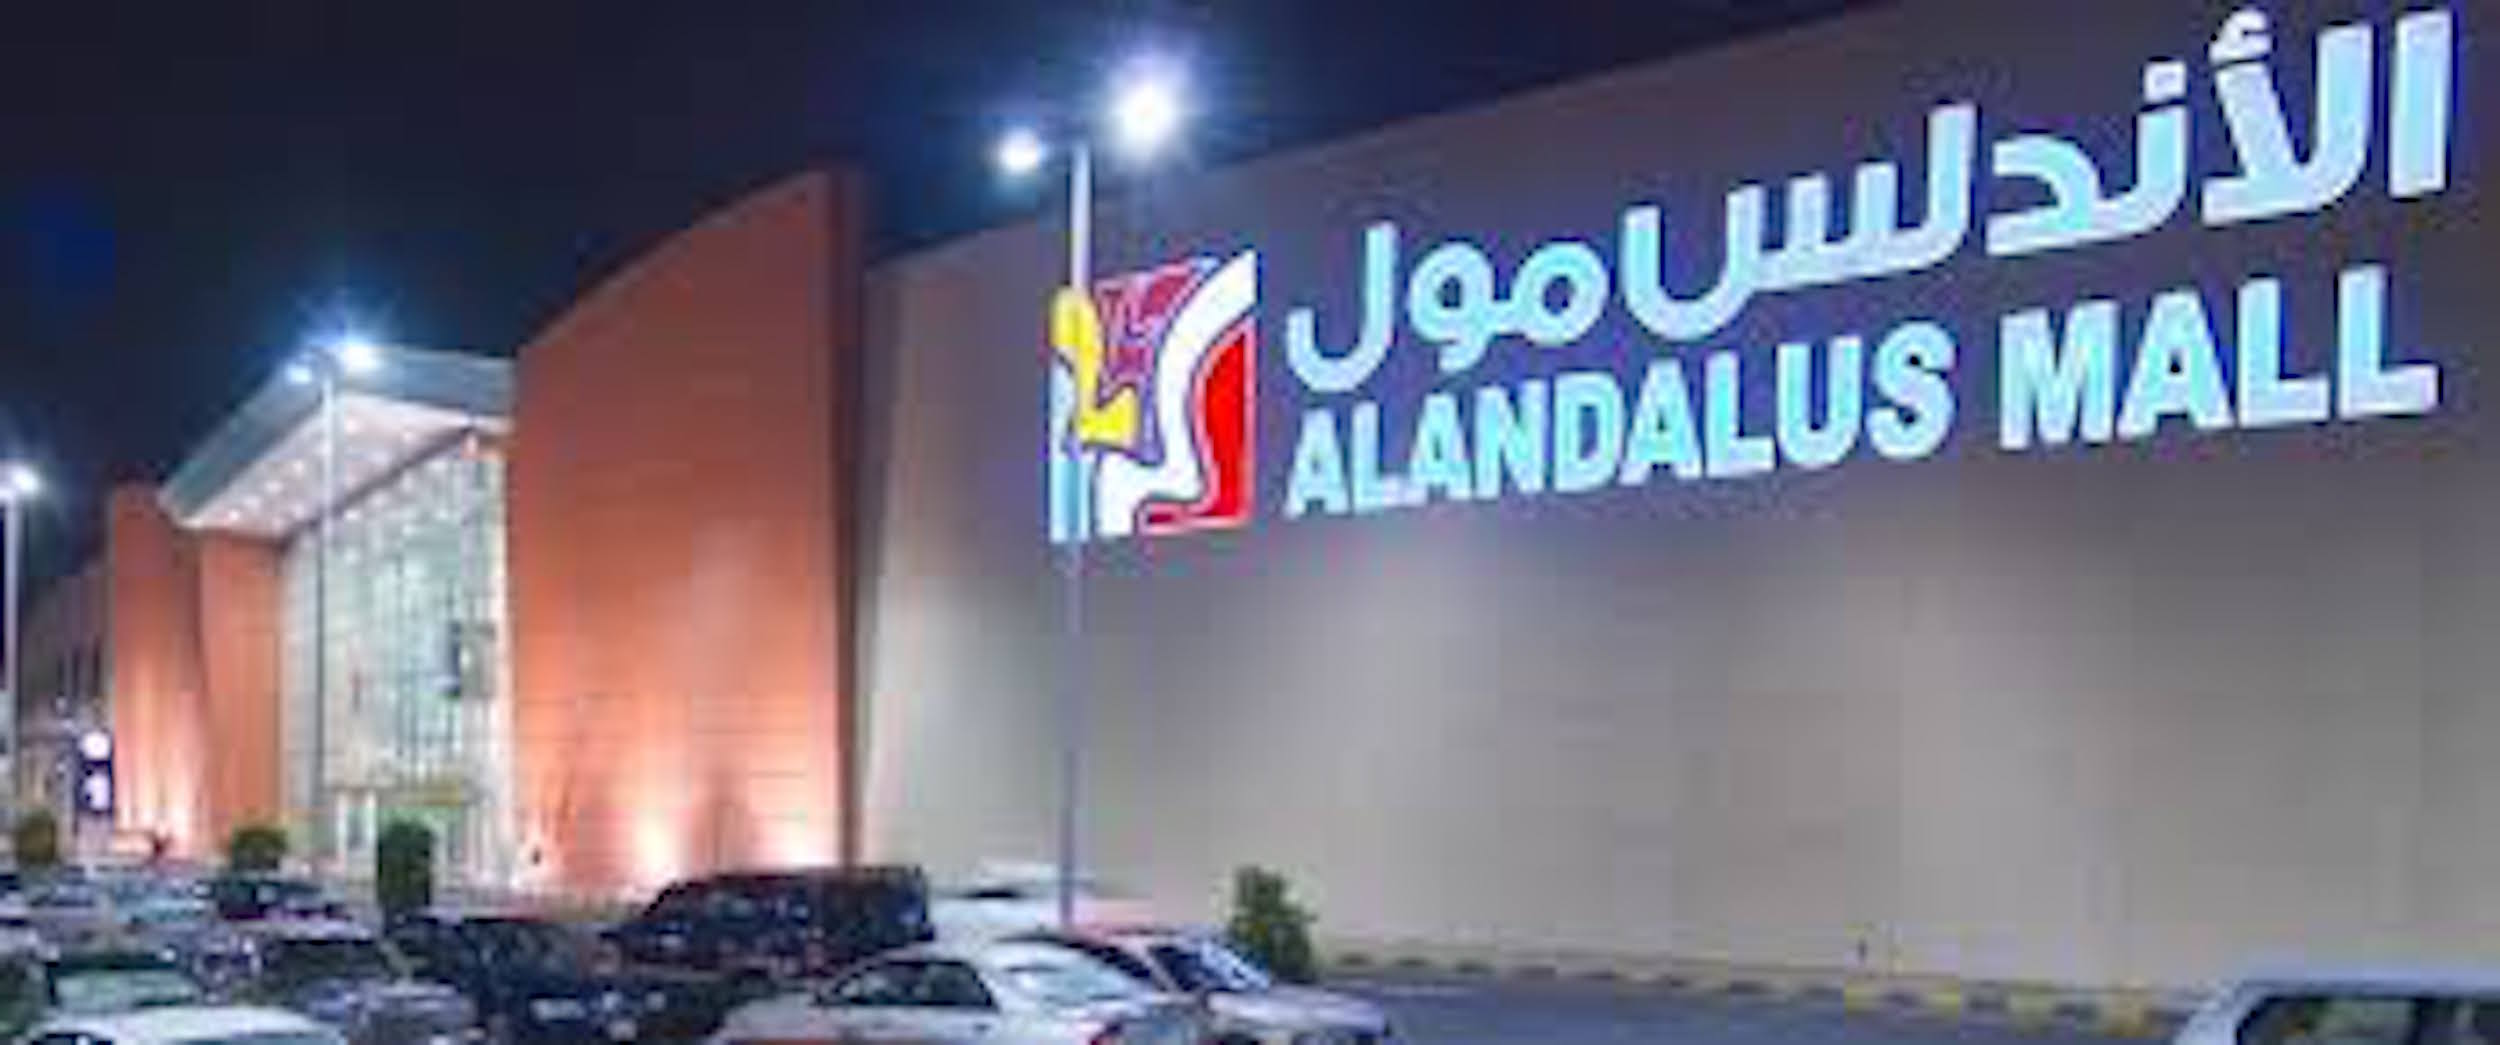 Andalus-Mall-1